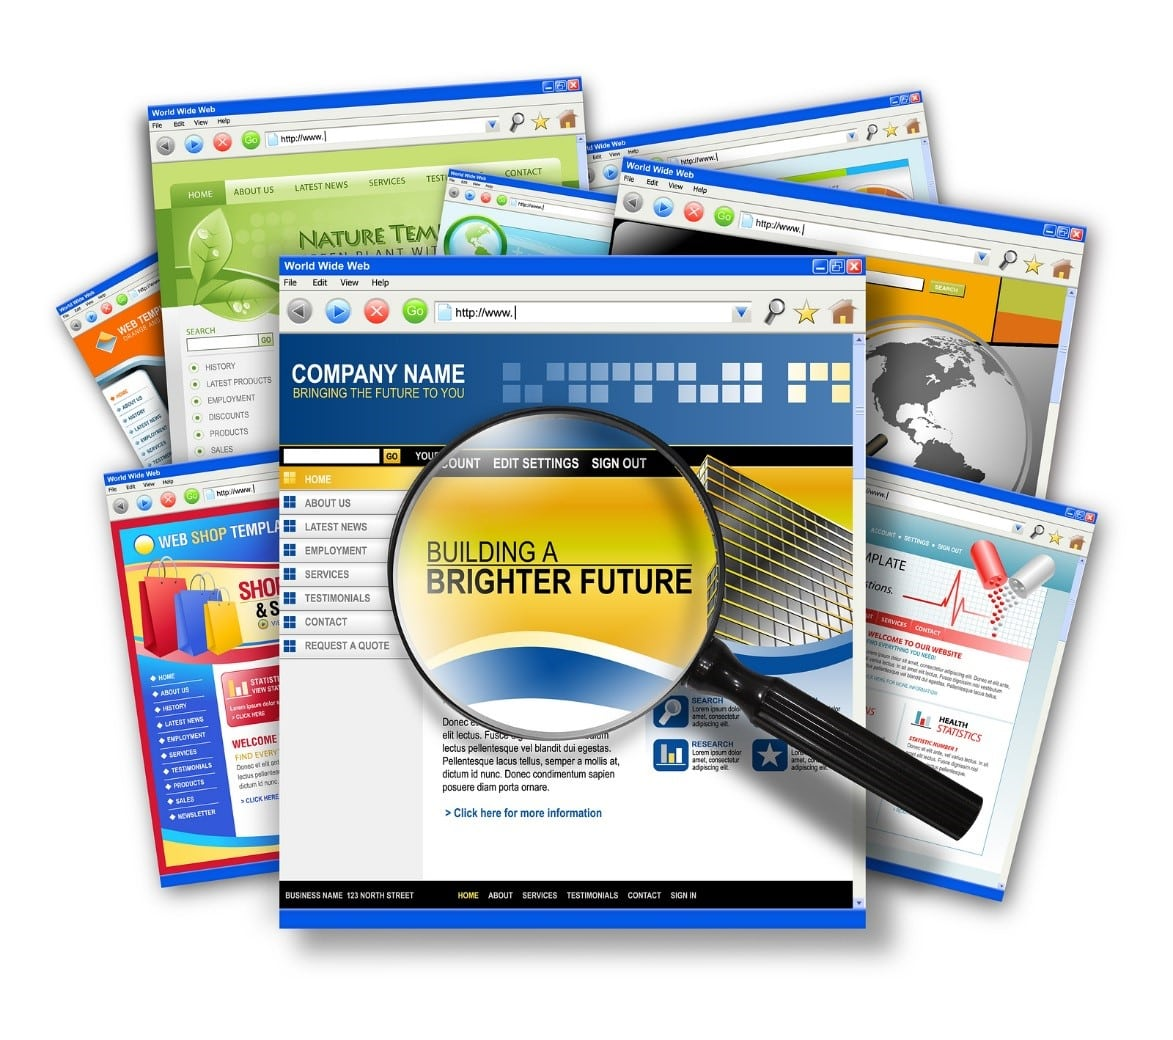 seo services - SEO Services Can Leverage Search to Increase Your Online Visibility